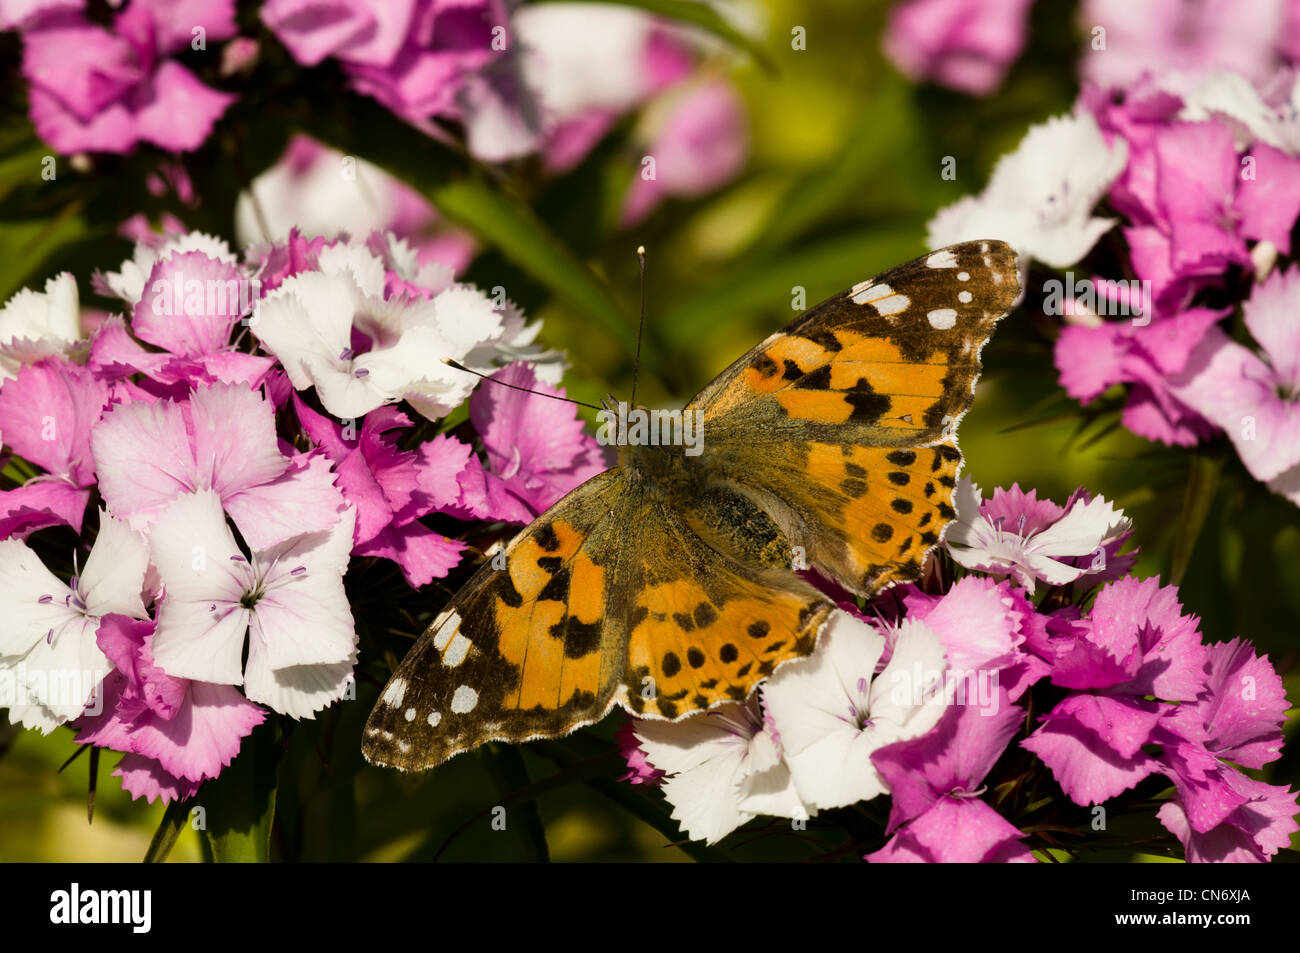 A painted lady butterfly (Cynthia cardui) nectaring on garden flowers at Strumpshaw Fen, Norfolk. June. Stock Photo